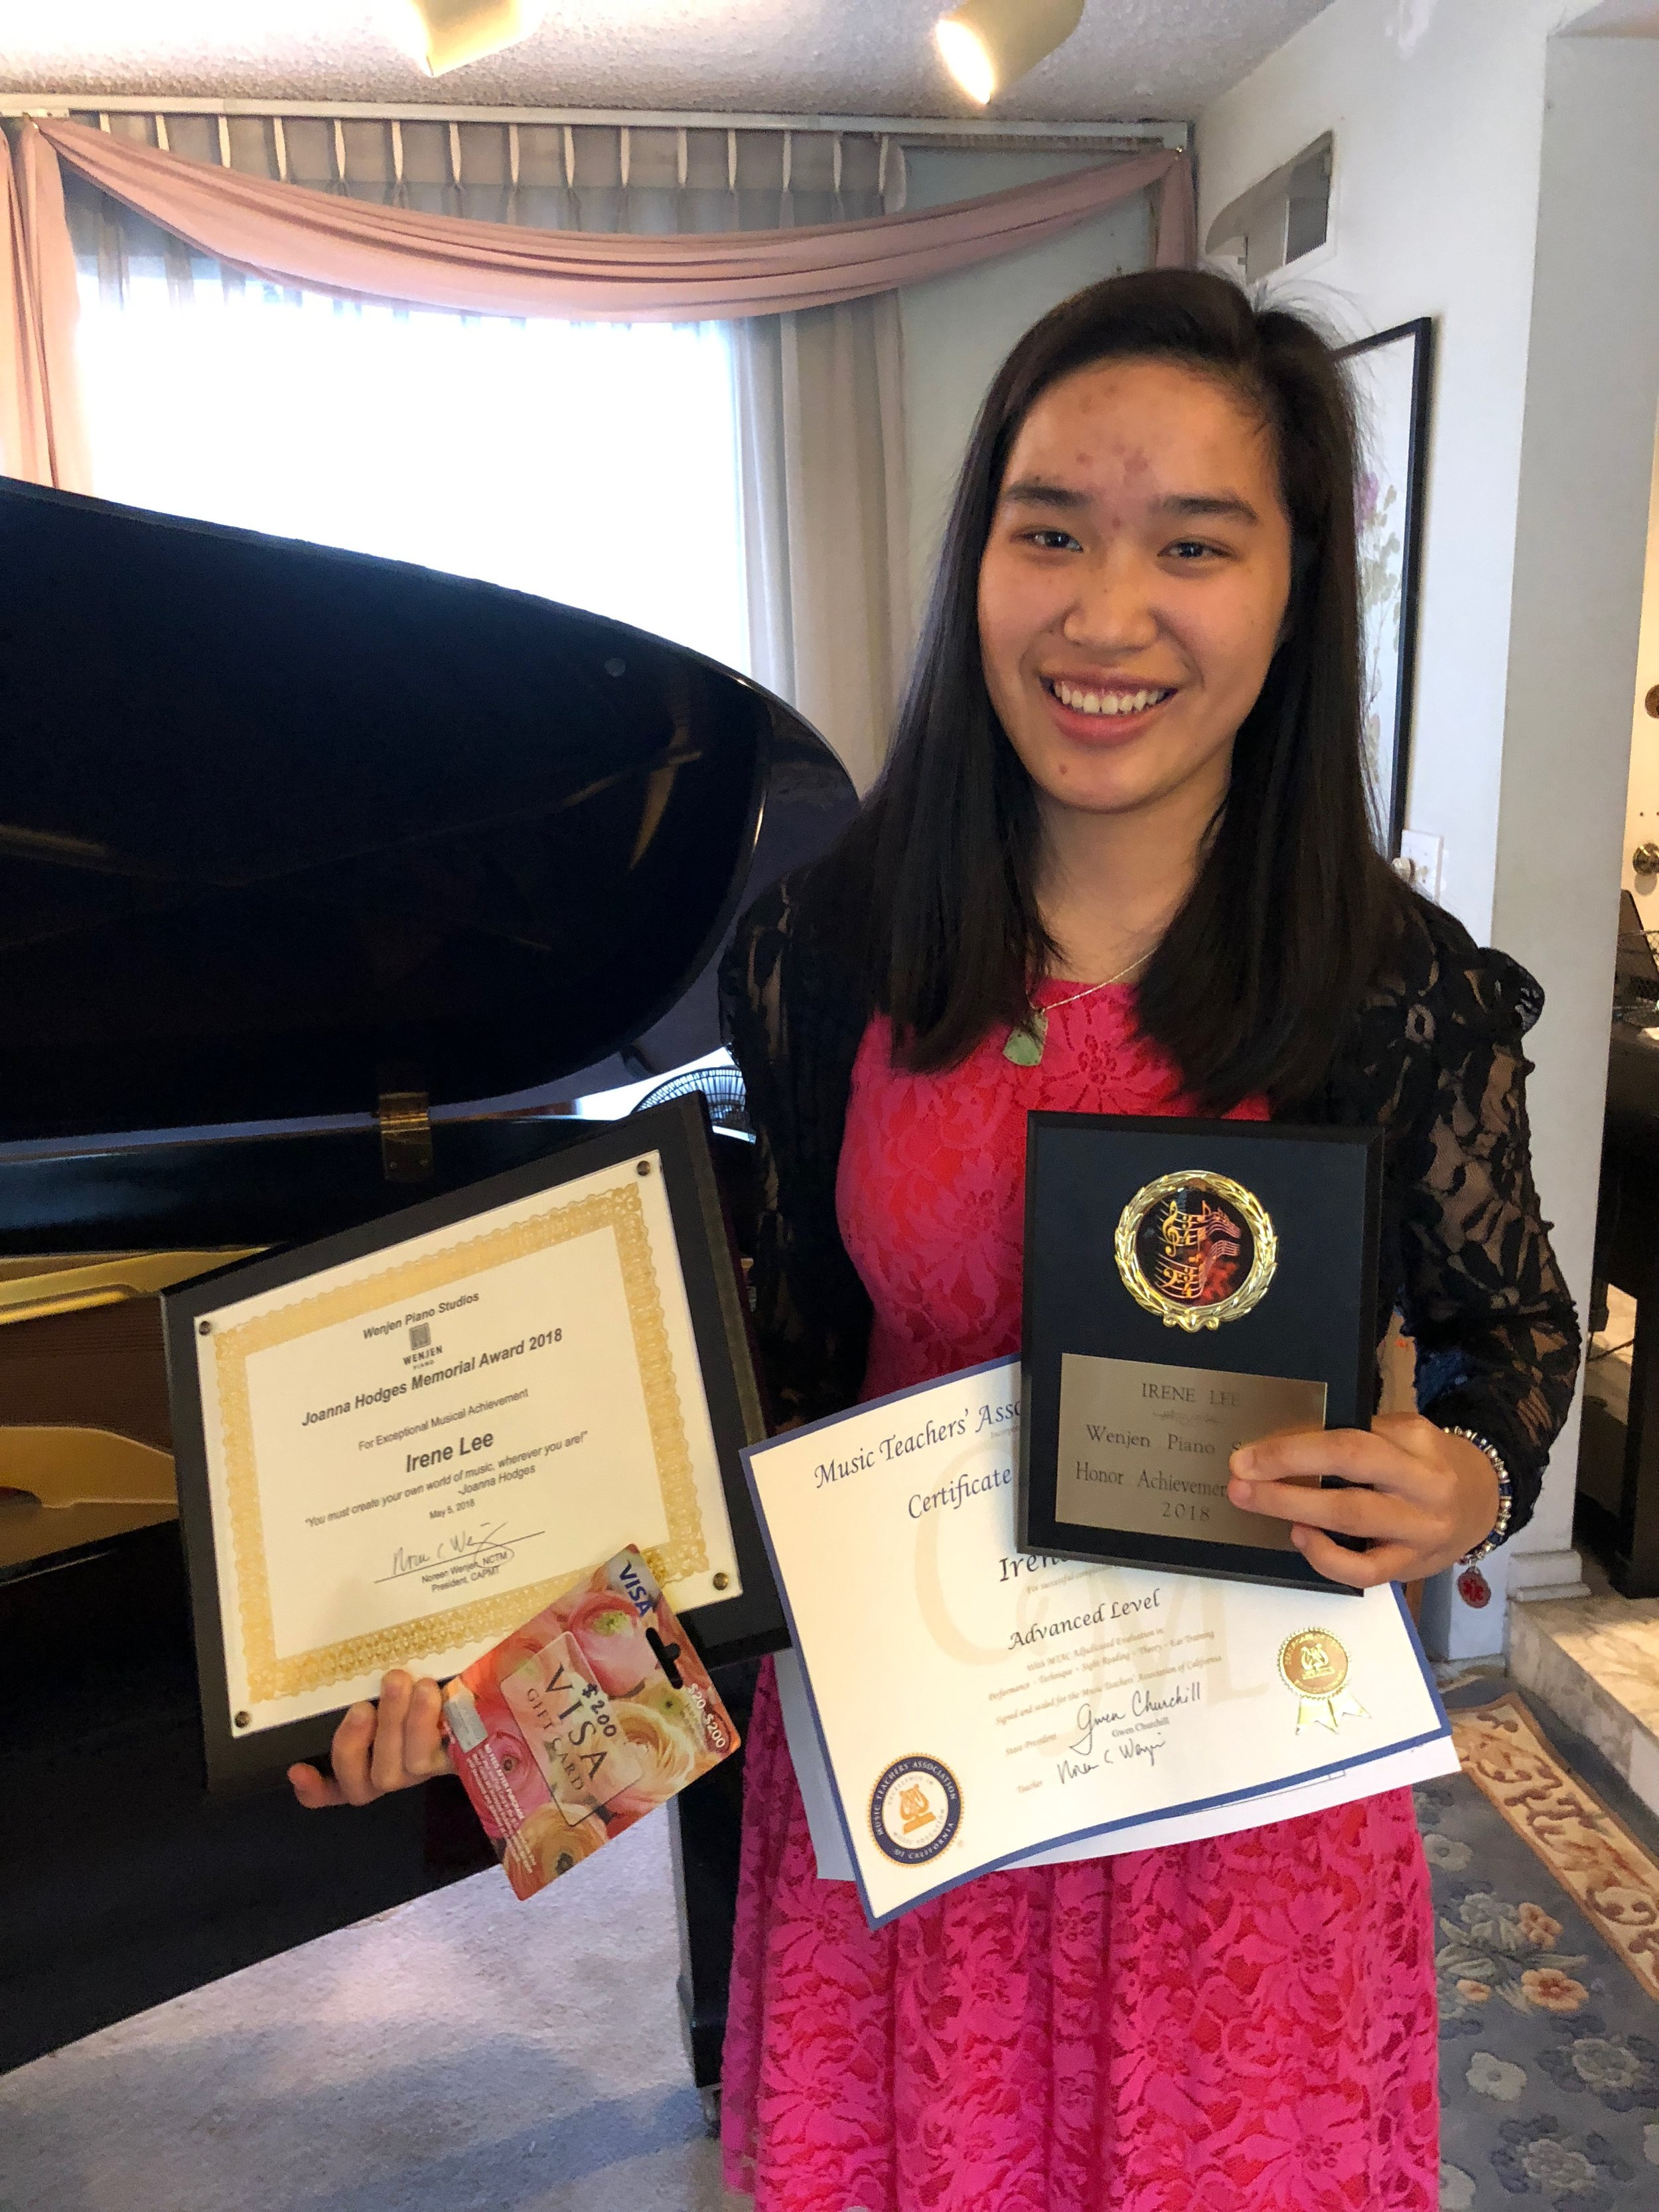 irene lee, winner of the Joanna hodges memorial award 2018 and student for 12 1/2 years at Wenjen piano studios